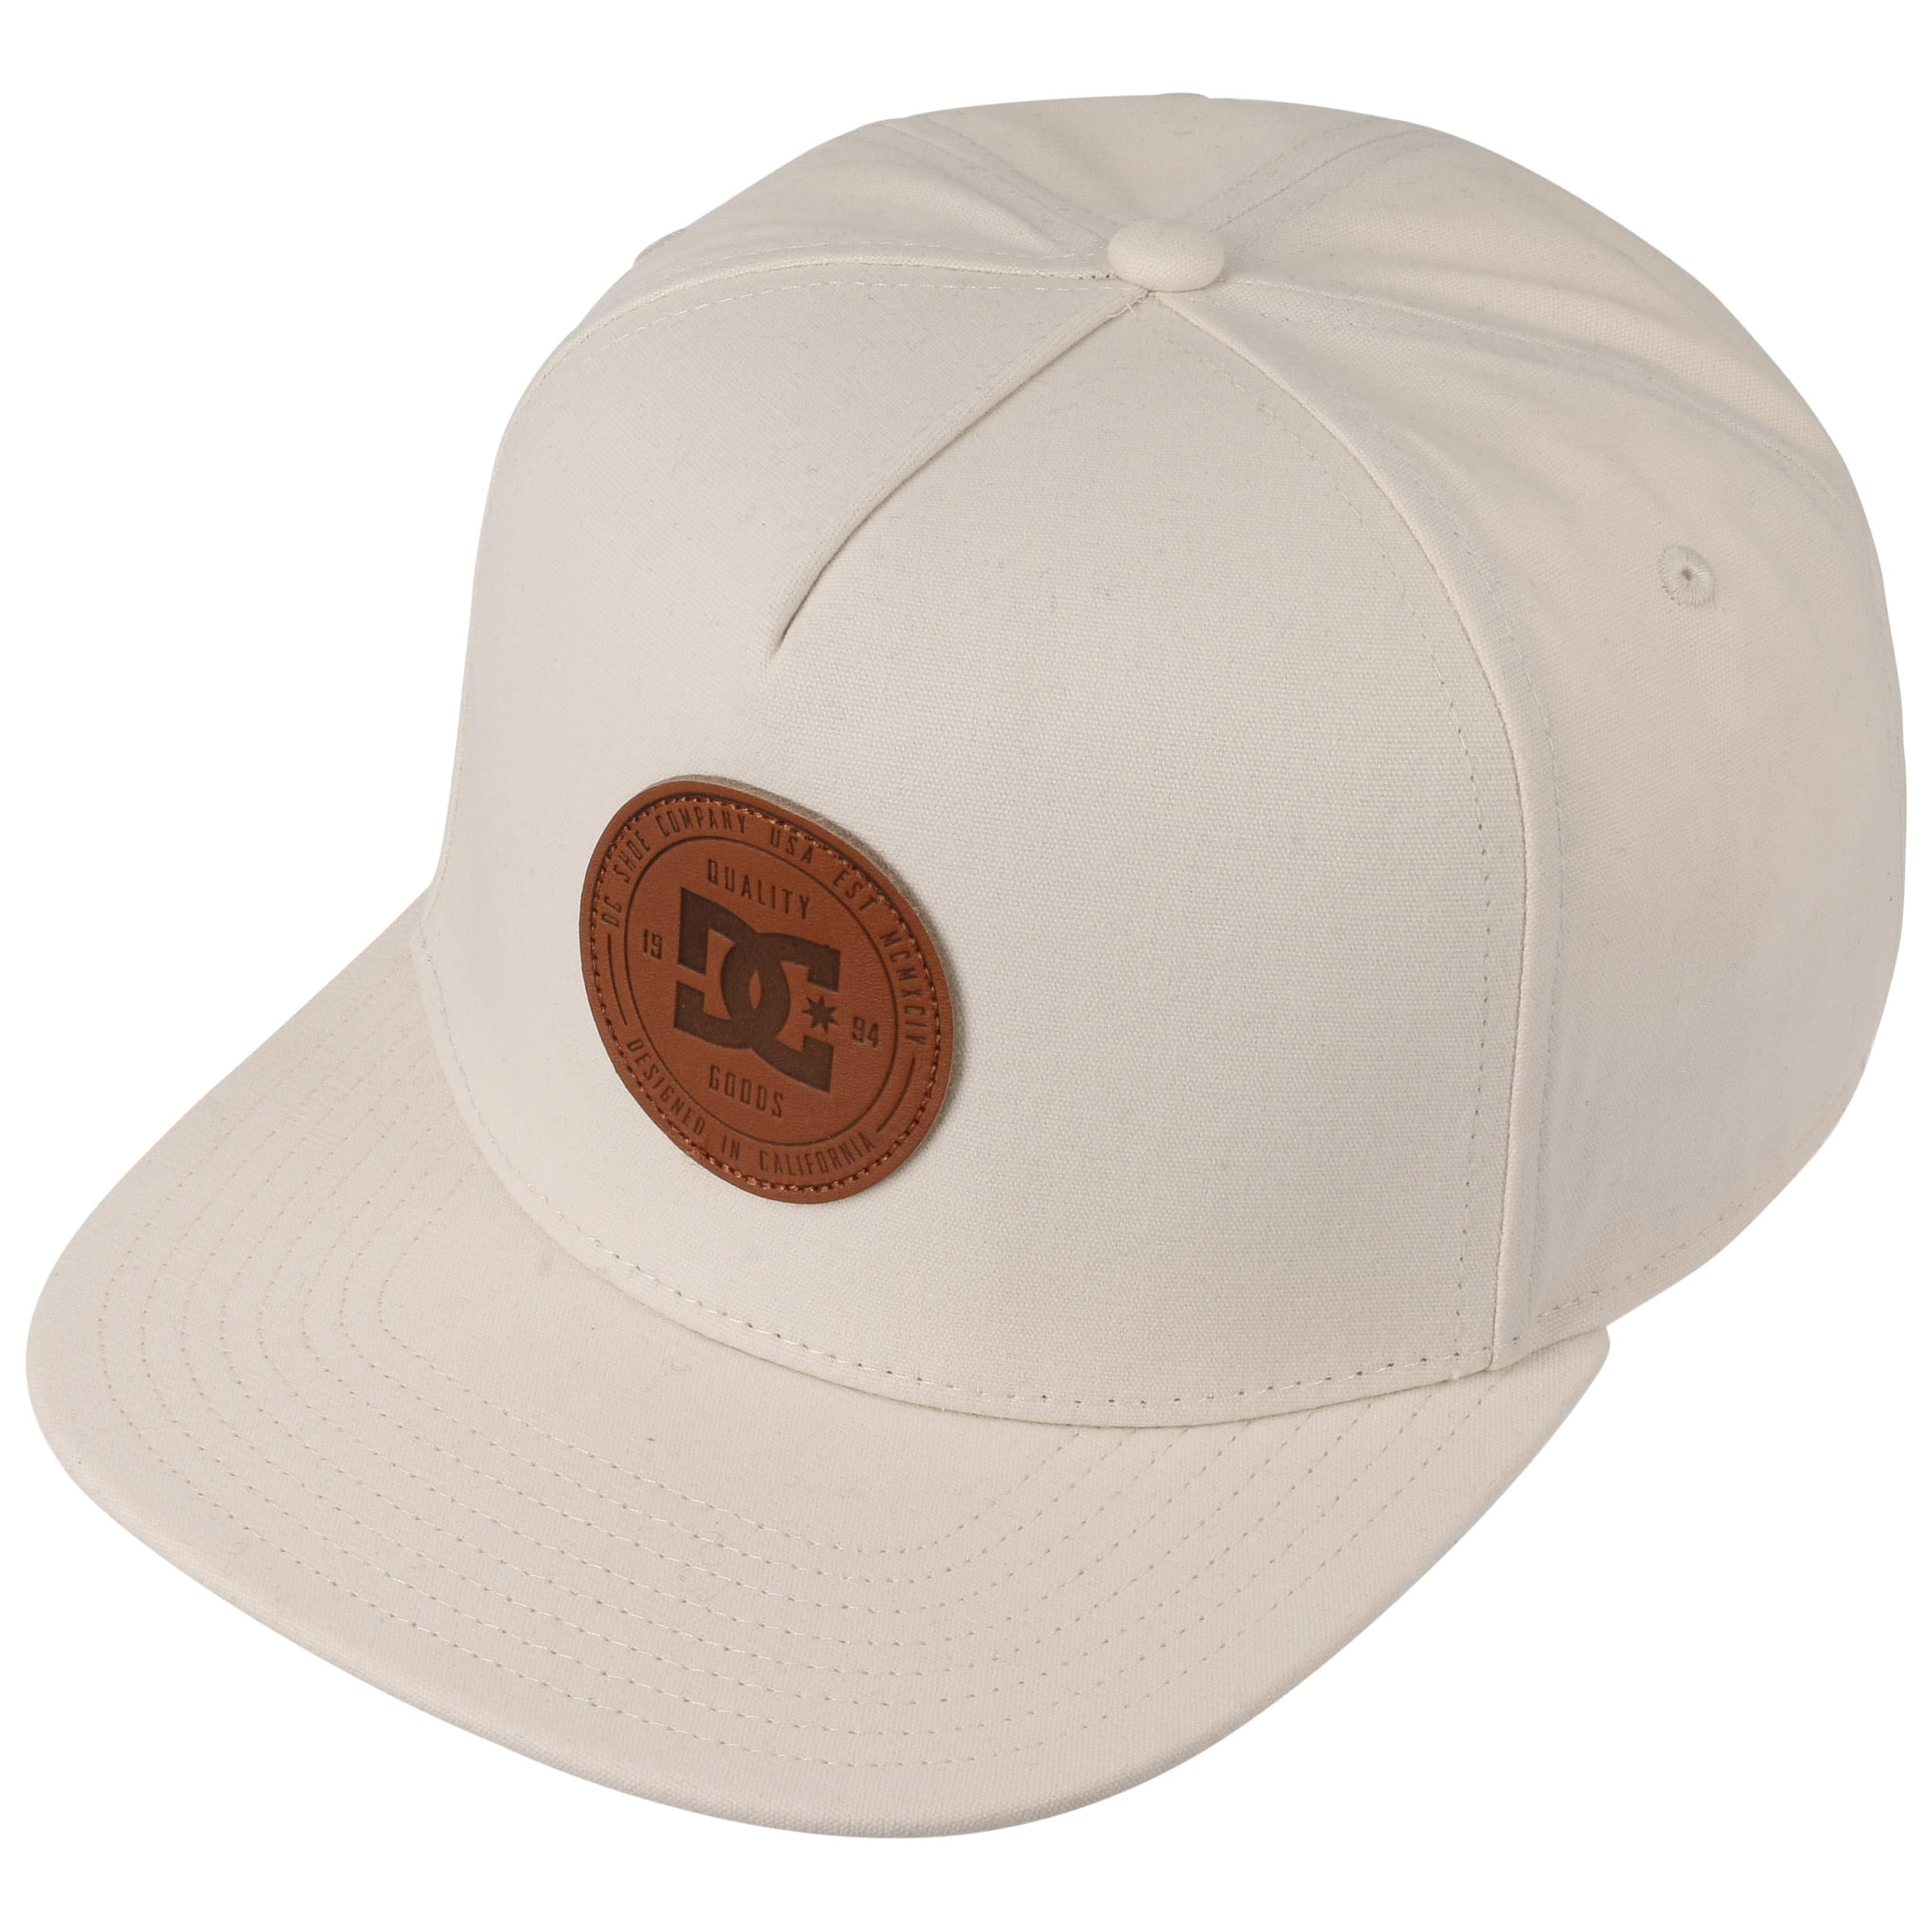 best loved cd702 2a55a Proceeder Snapback Cap by DC Shoes Co - cream white 1 ...